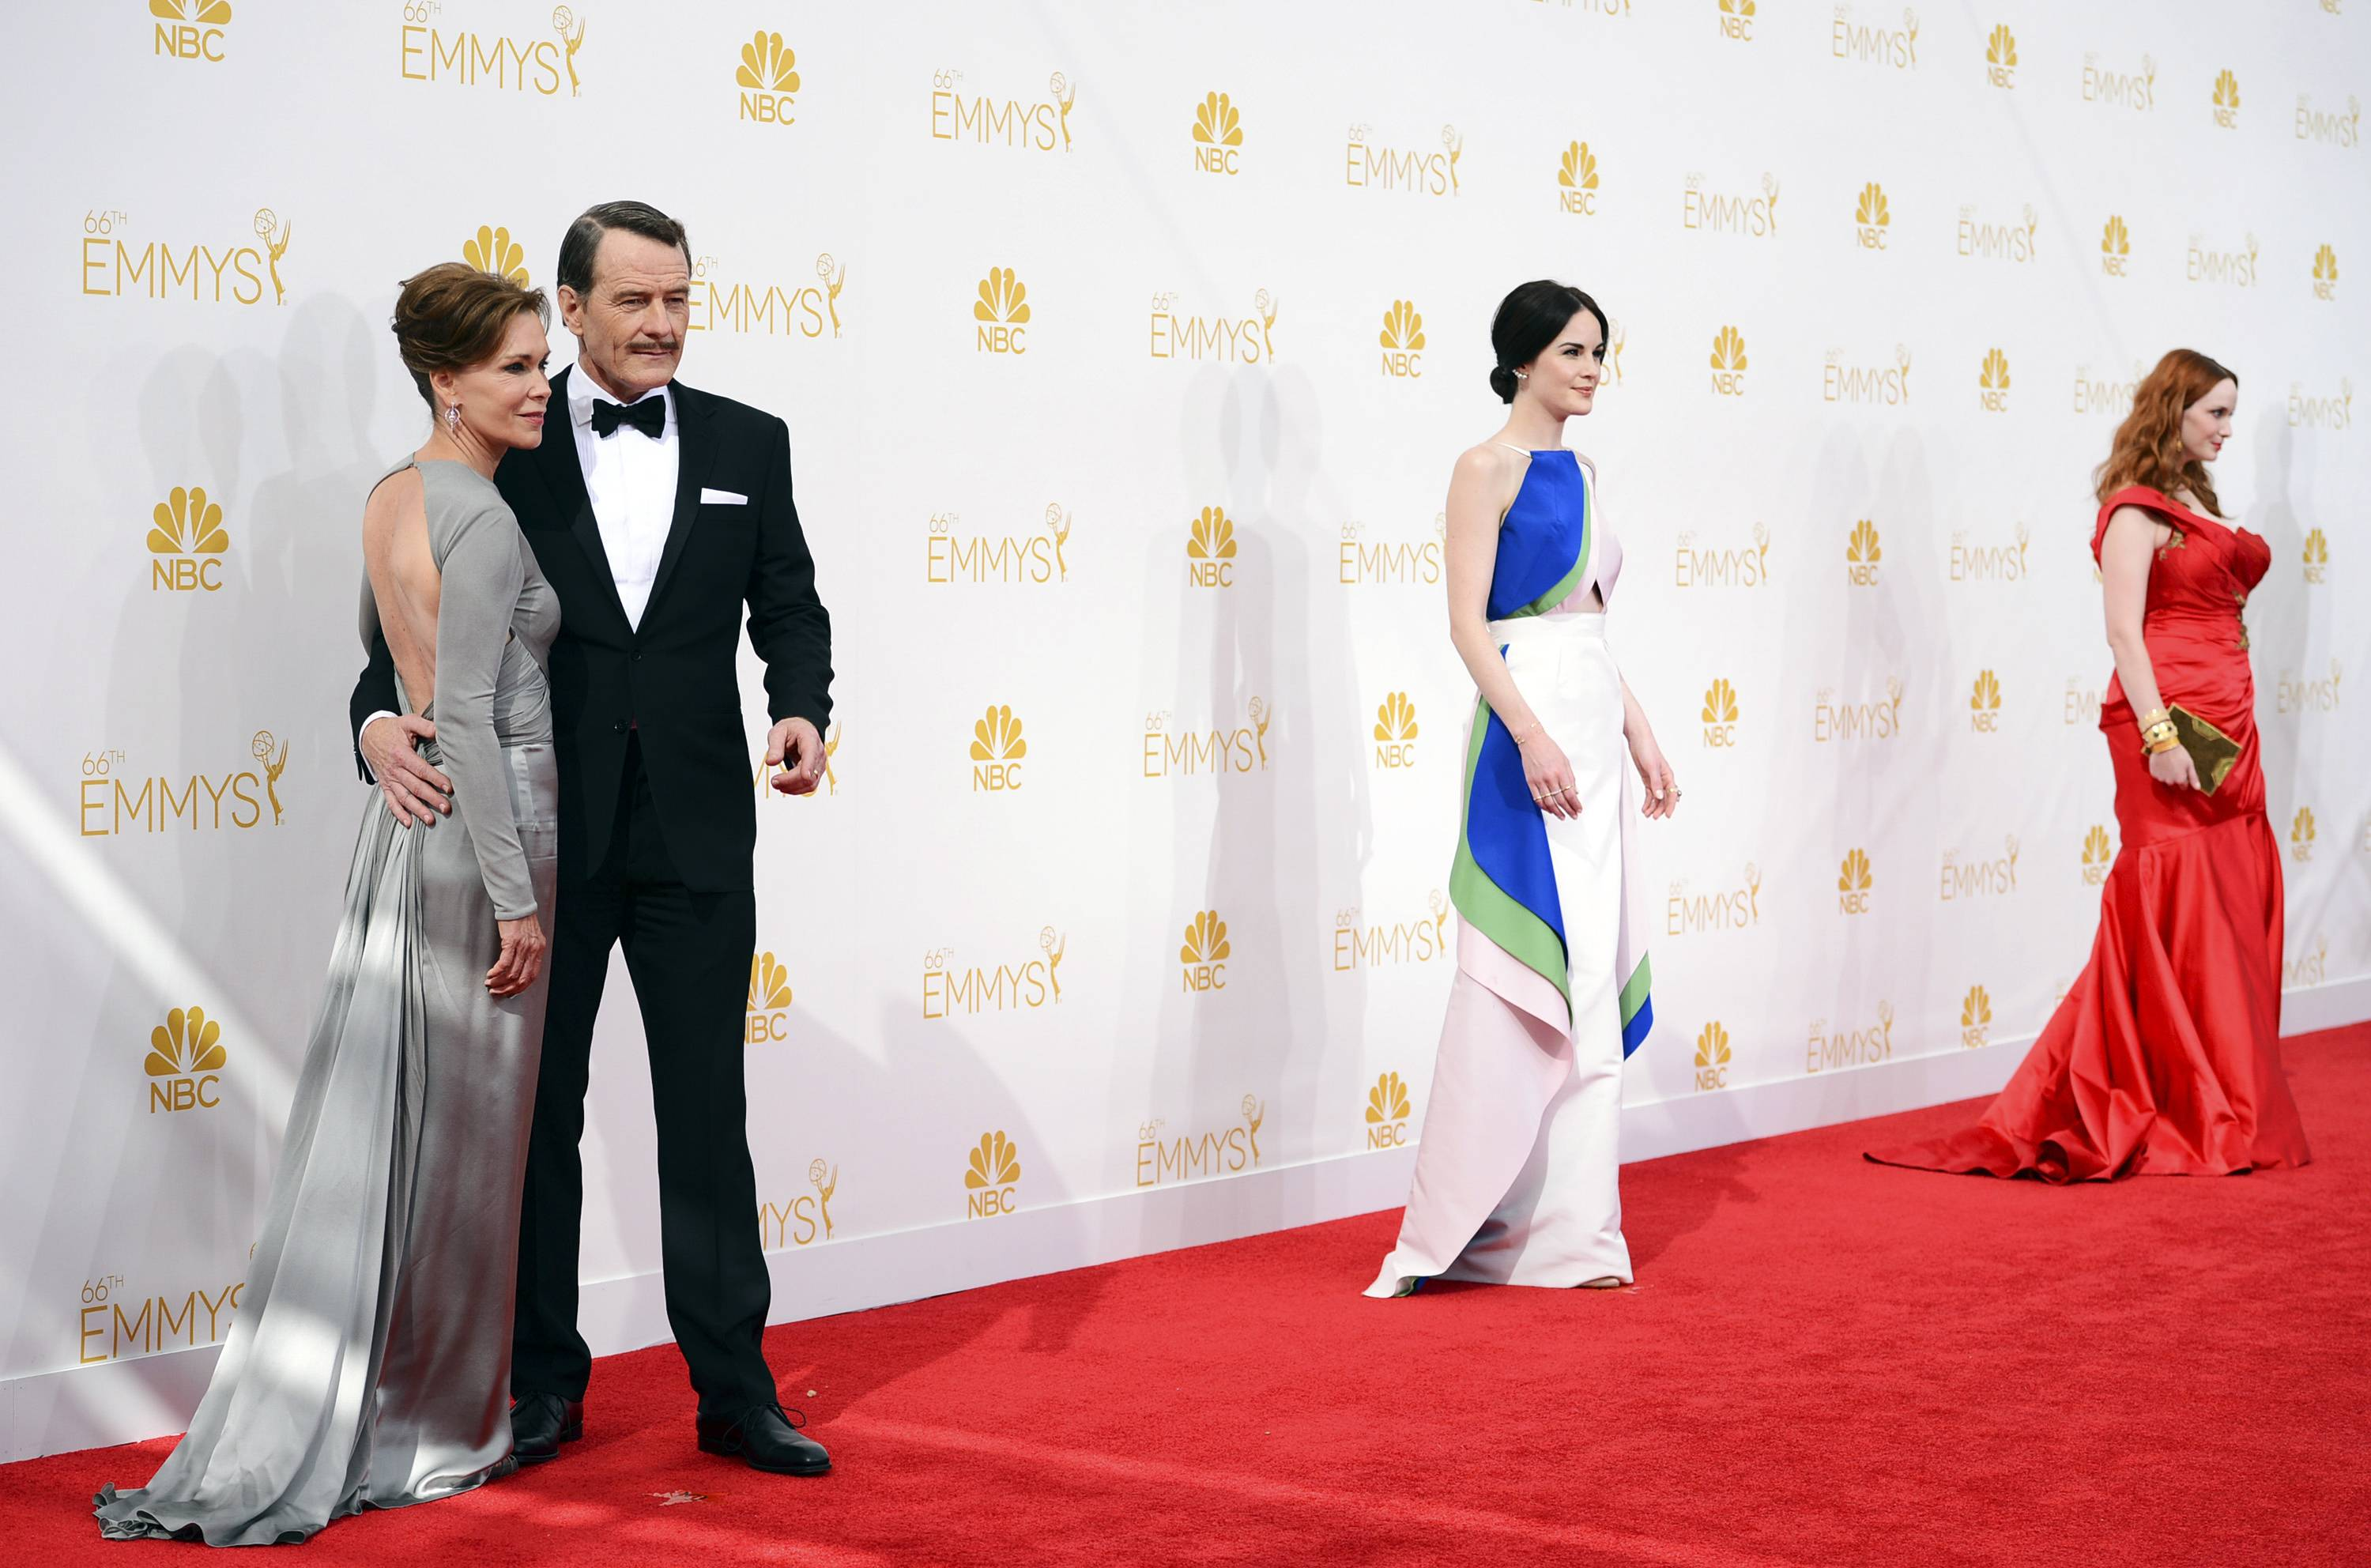 Robin Dearden, from left, Bryan Cranston, Michelle Dockery and Christina Hendricks arrive at the 66th Annual Primetime Emmy Awards at the Nokia Theatre.